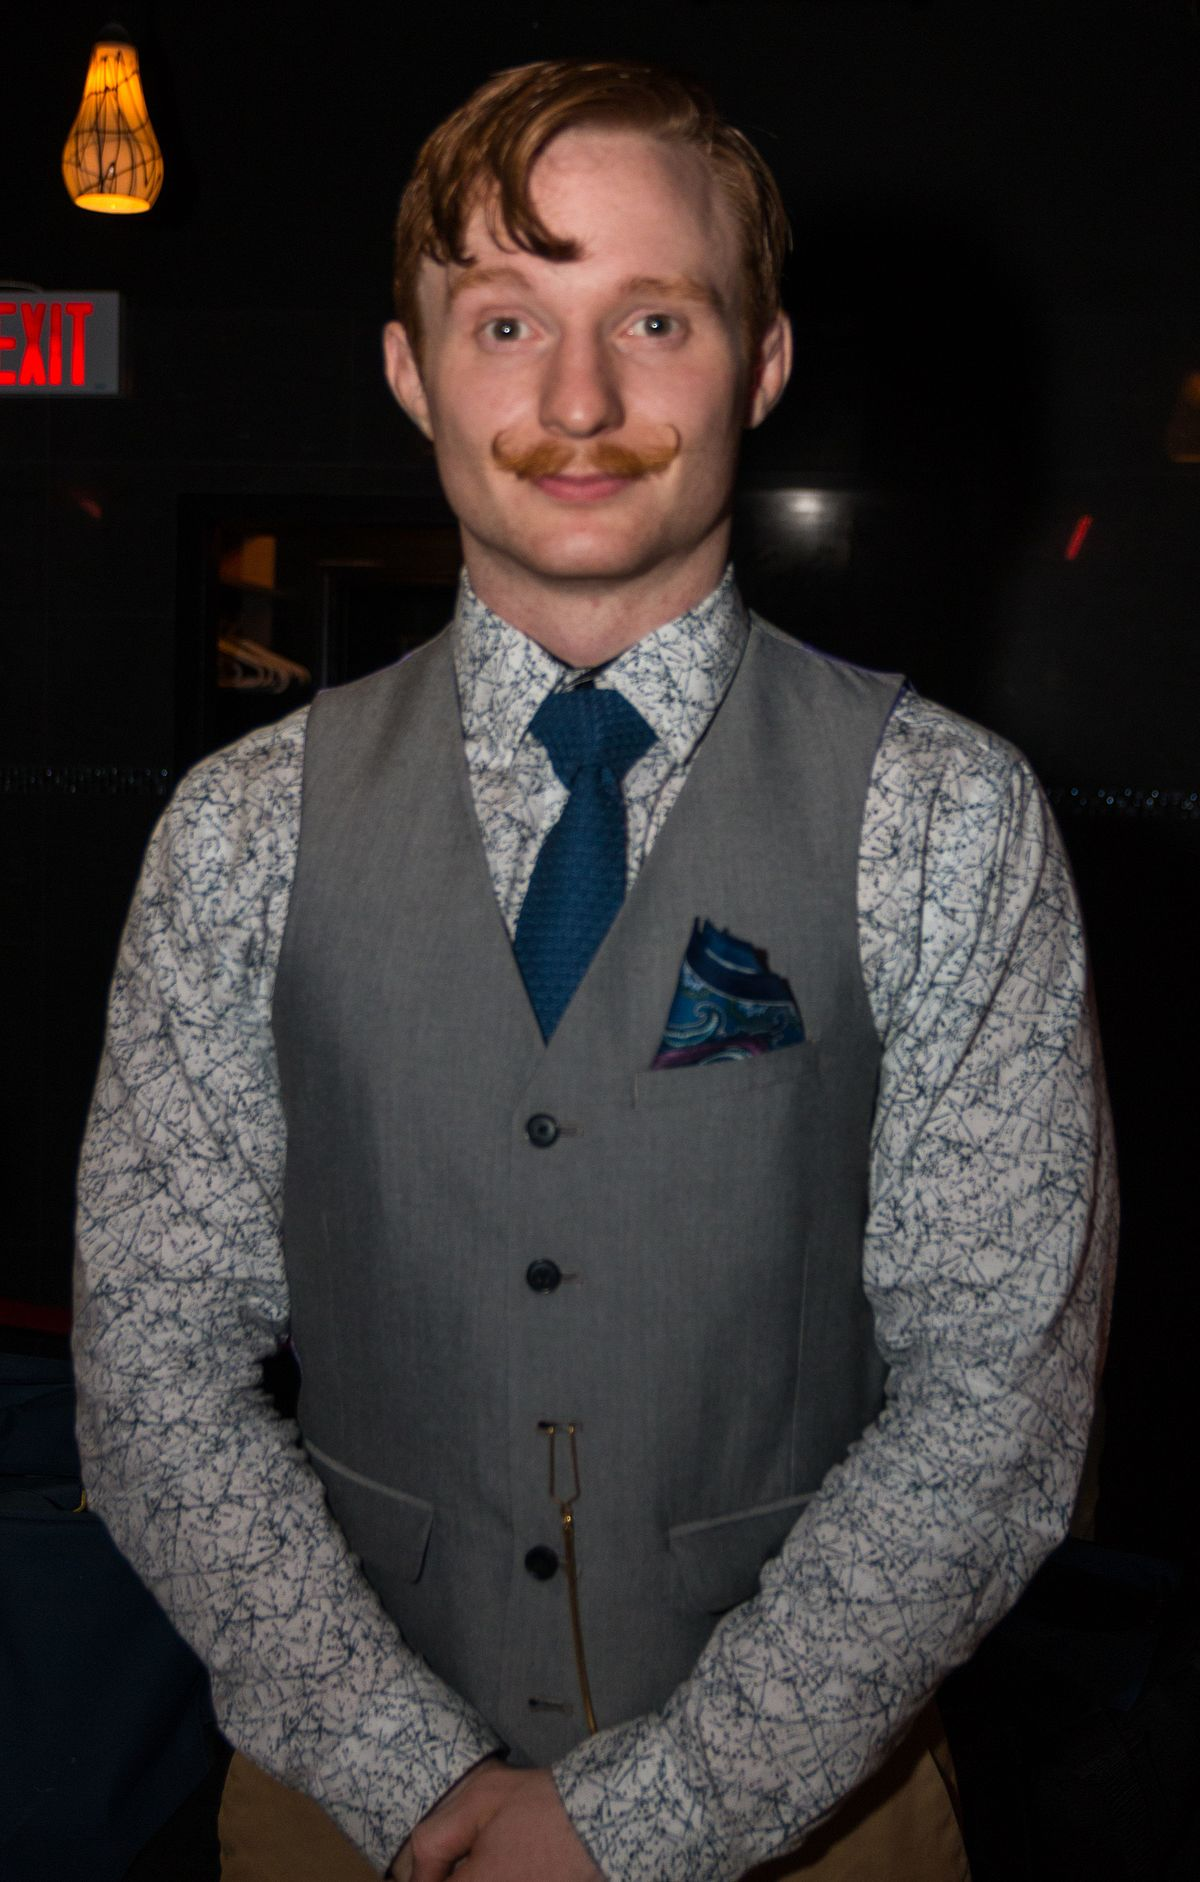 Jack Gallagher Wrestler Wikipedia